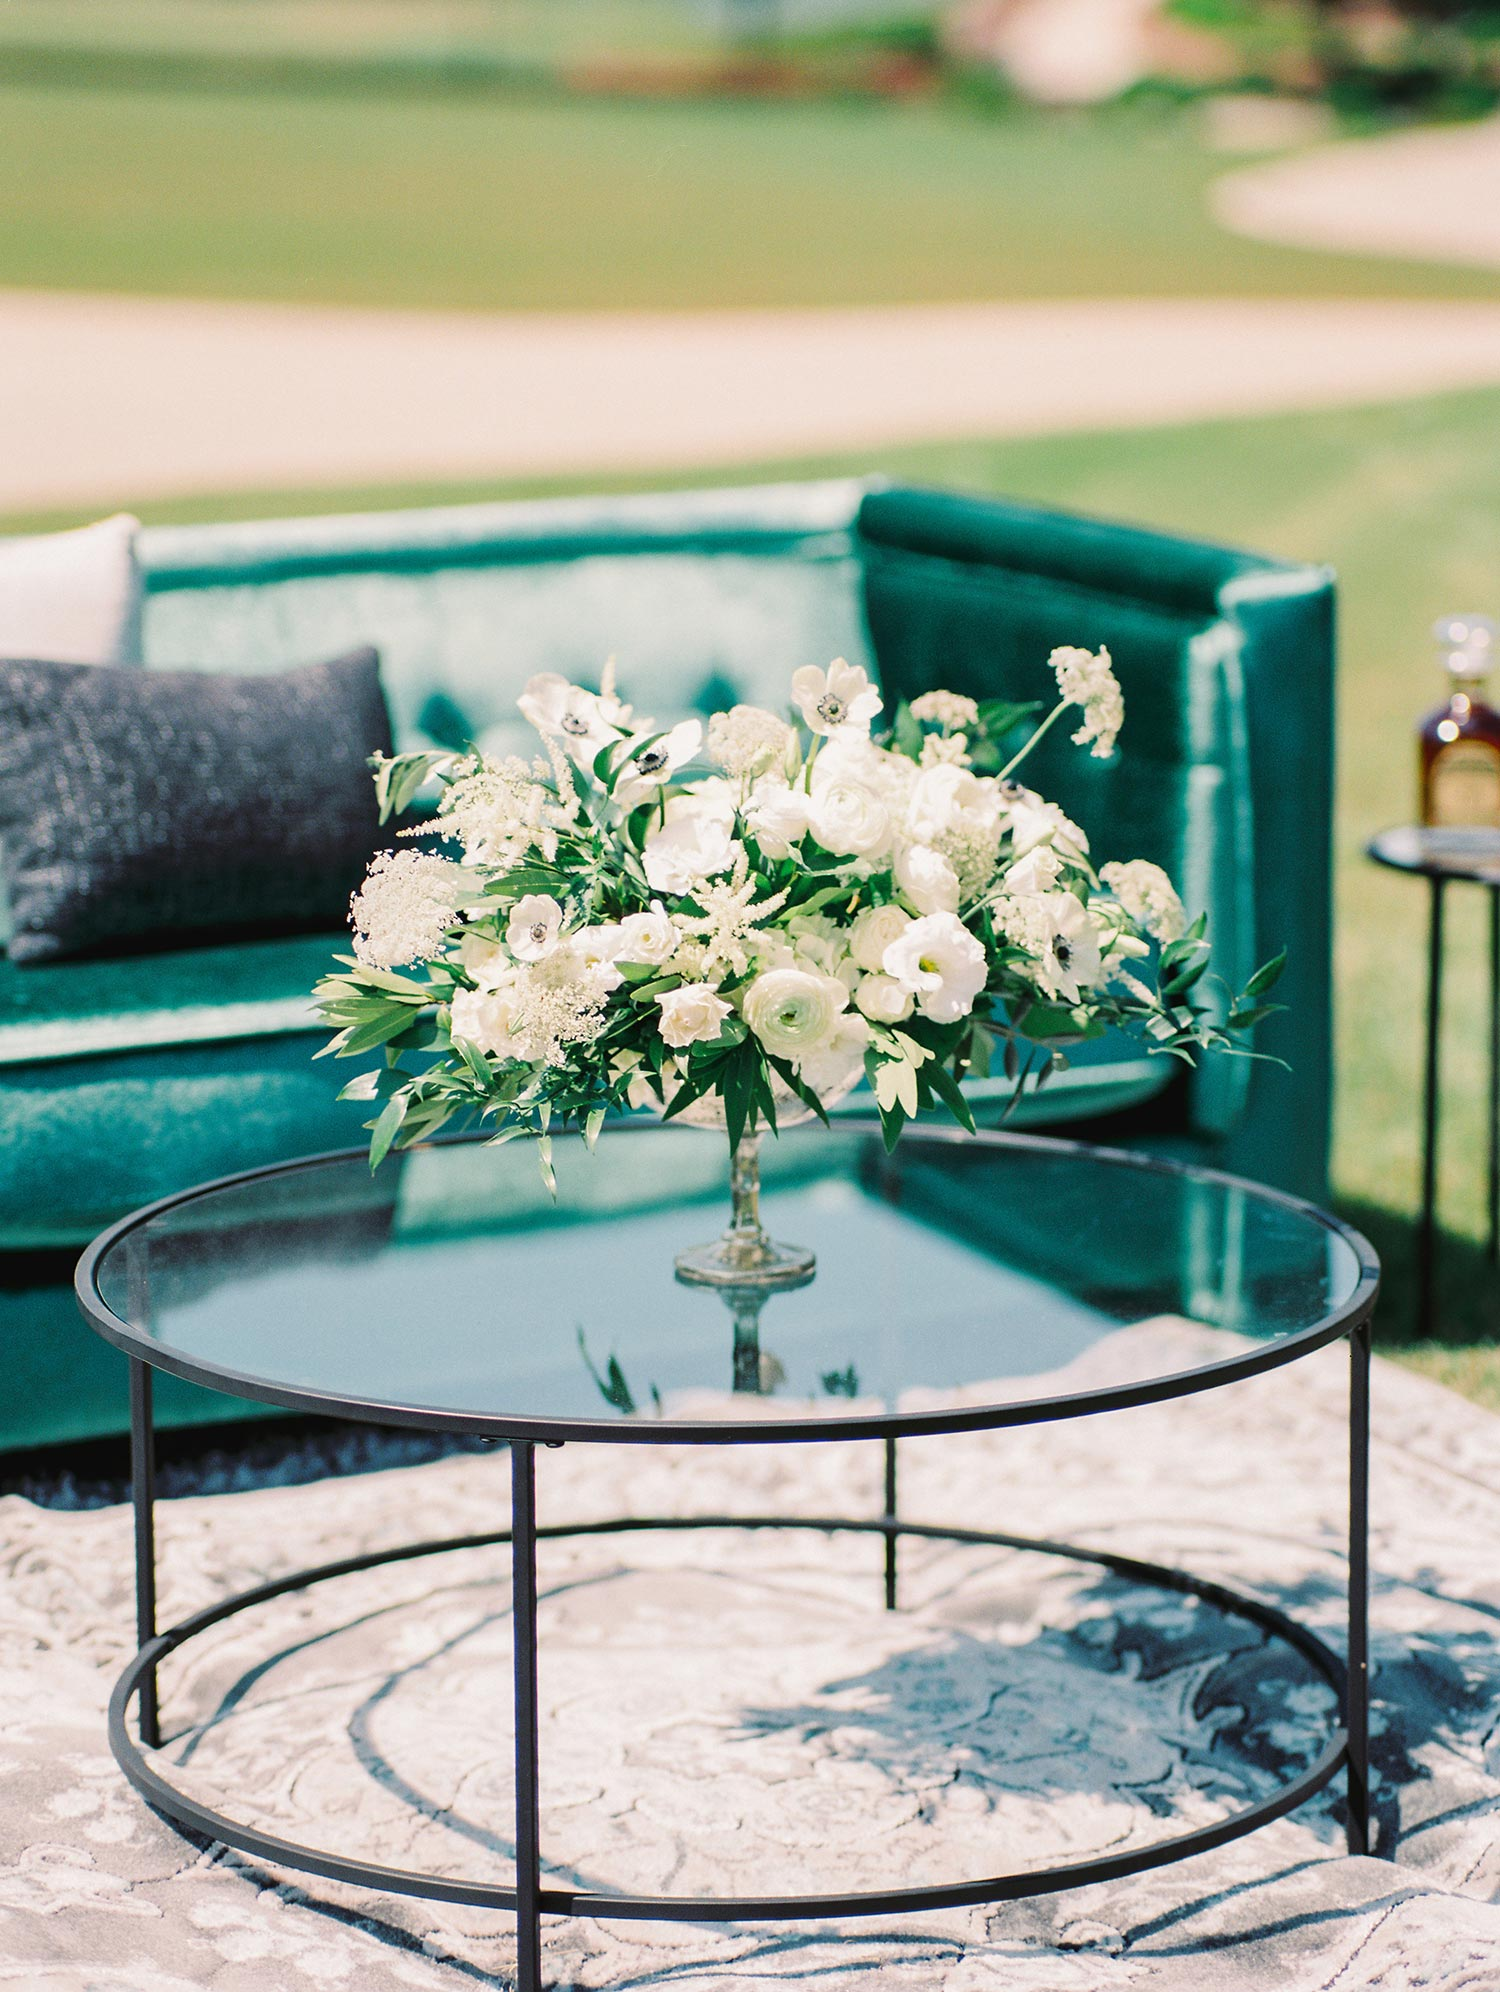 White flowers on a round coffee table at a outdoor wedding lounge